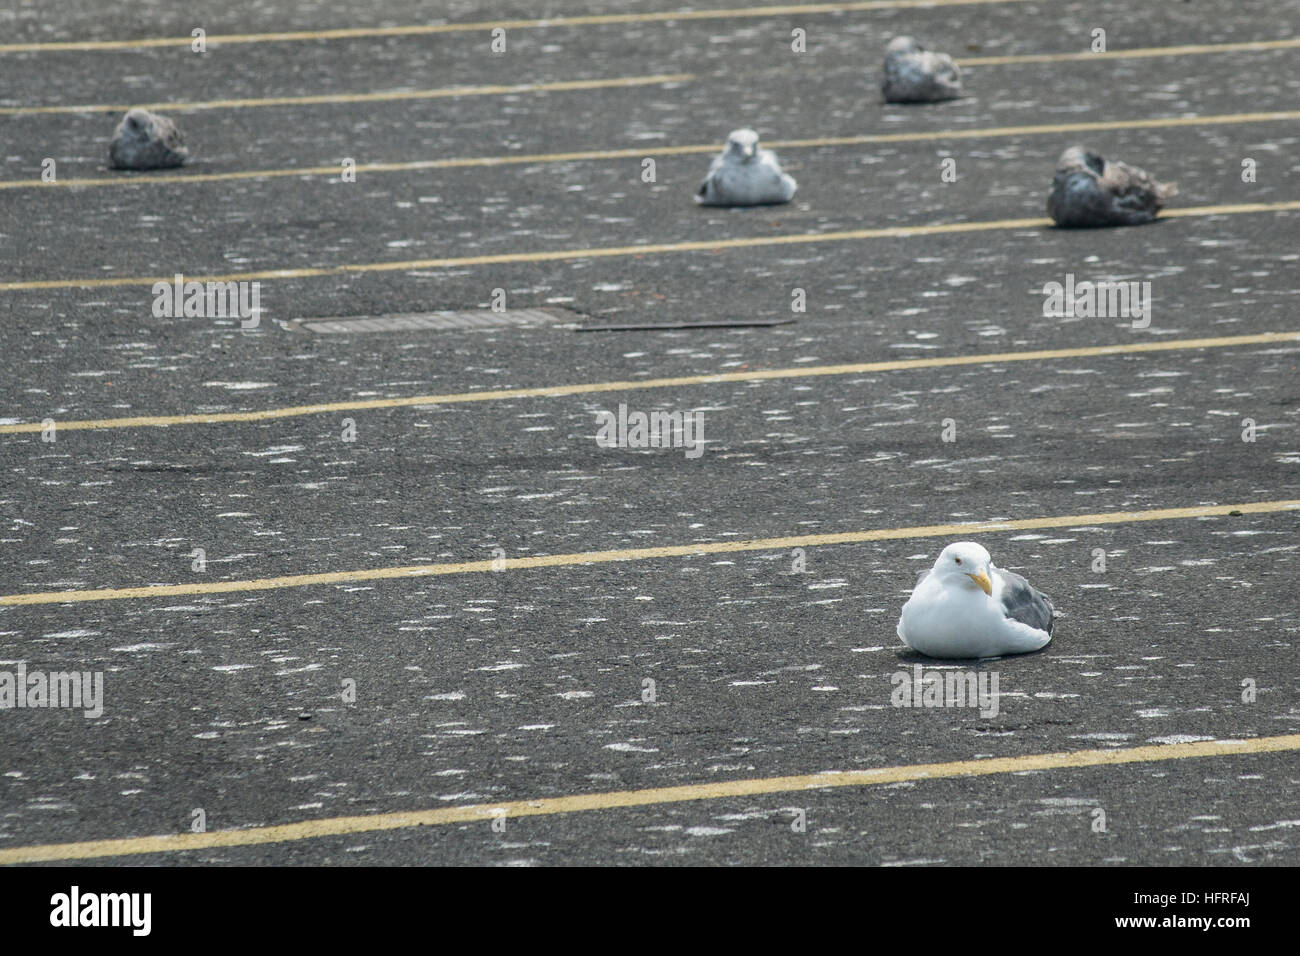 Seagulls in a parking lot pockmarked with their guano (bird droppings). - Stock Image